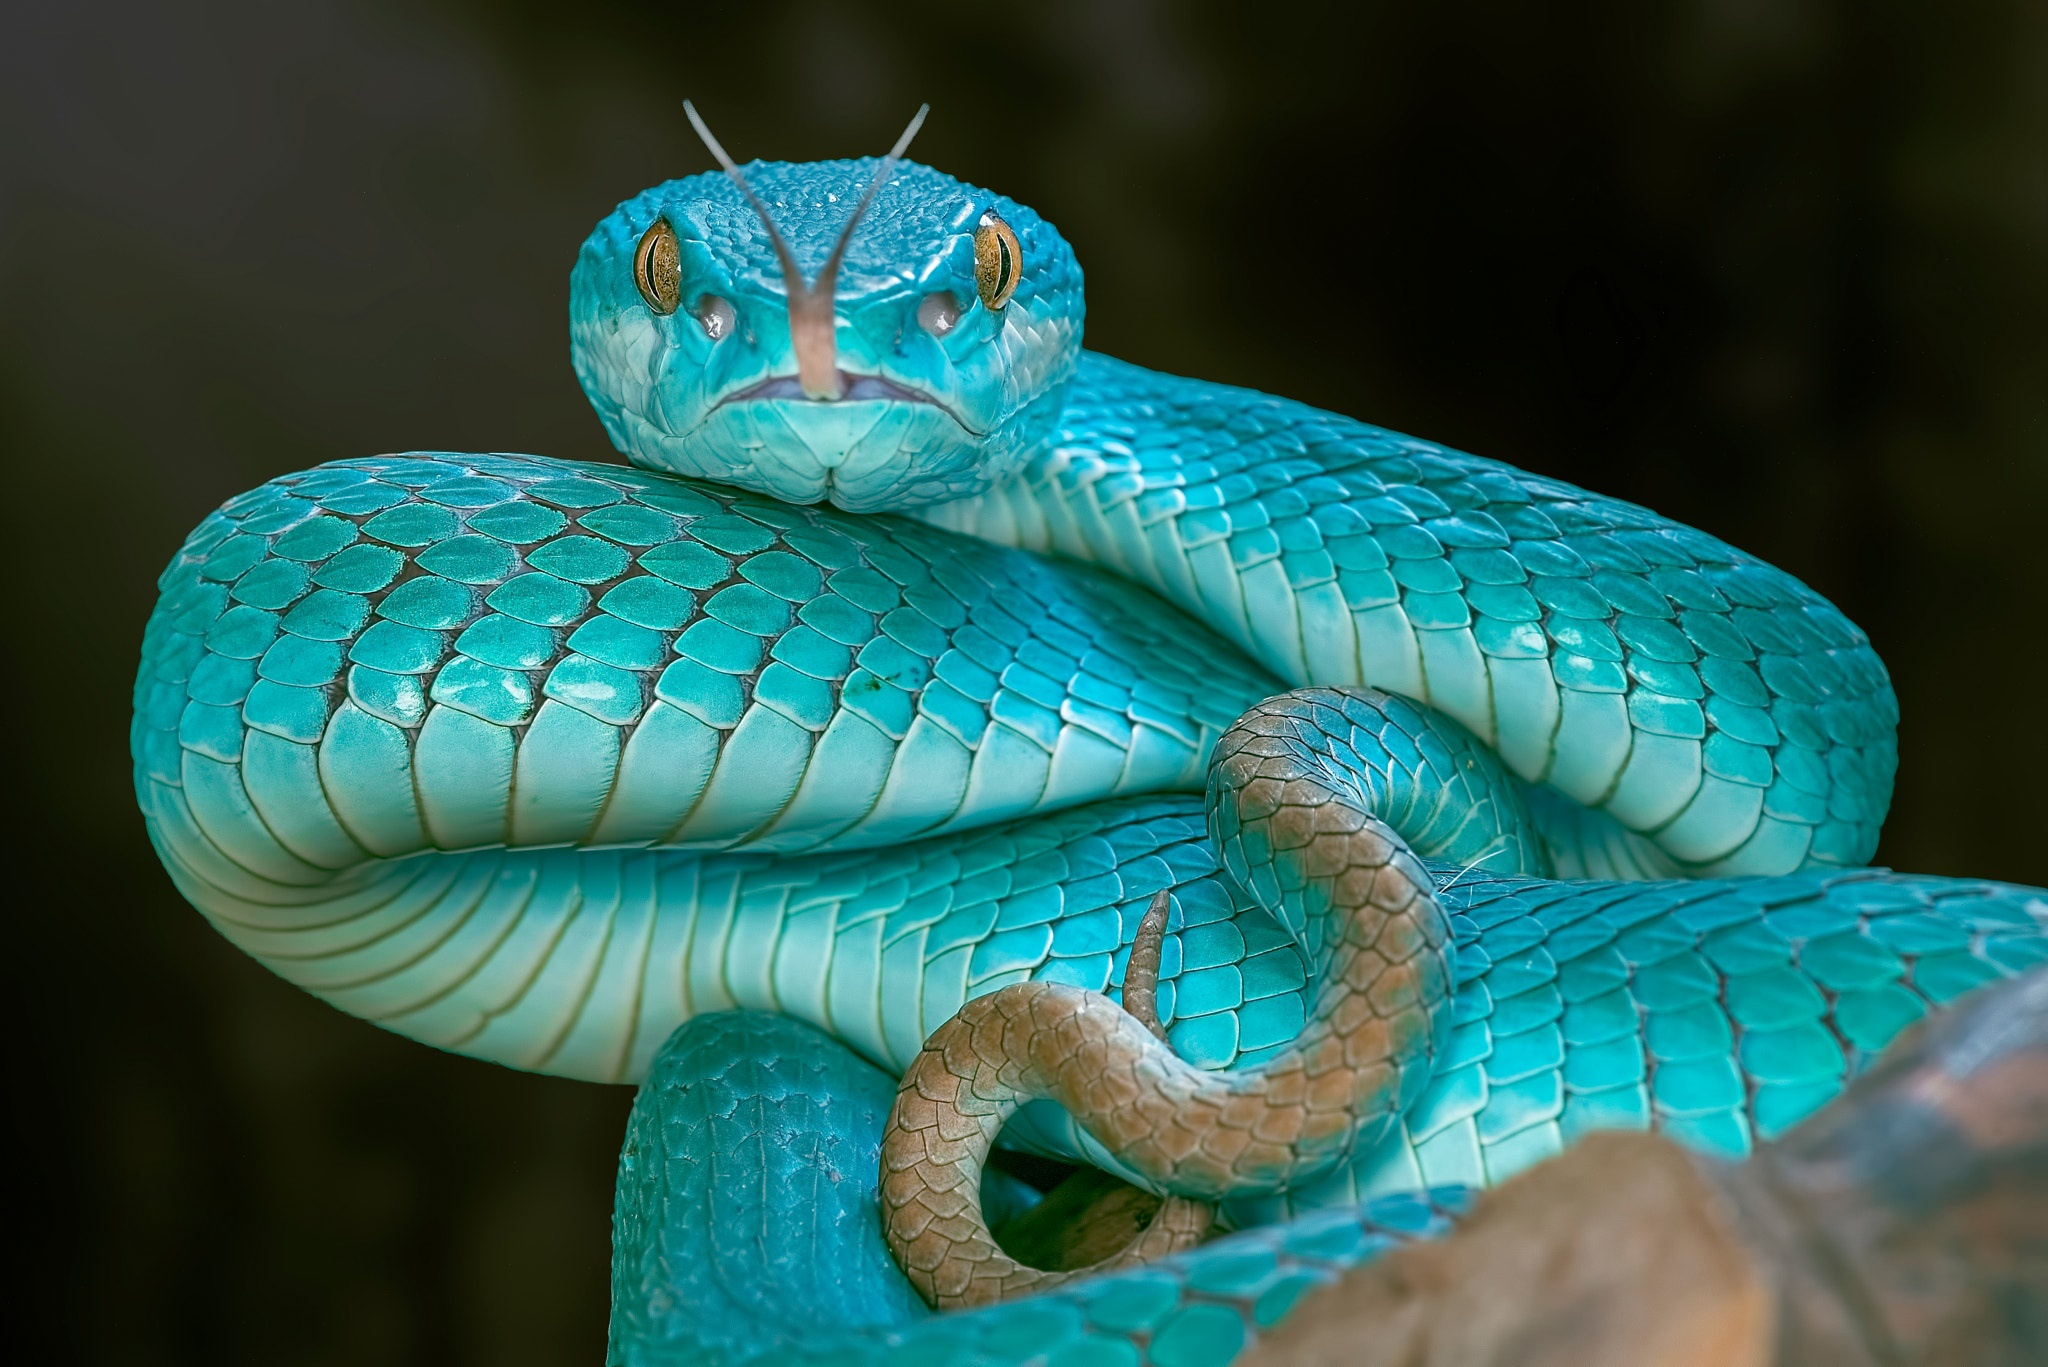 A Very Rare Blue Pit Viper Snake Hd Wallpaper Background